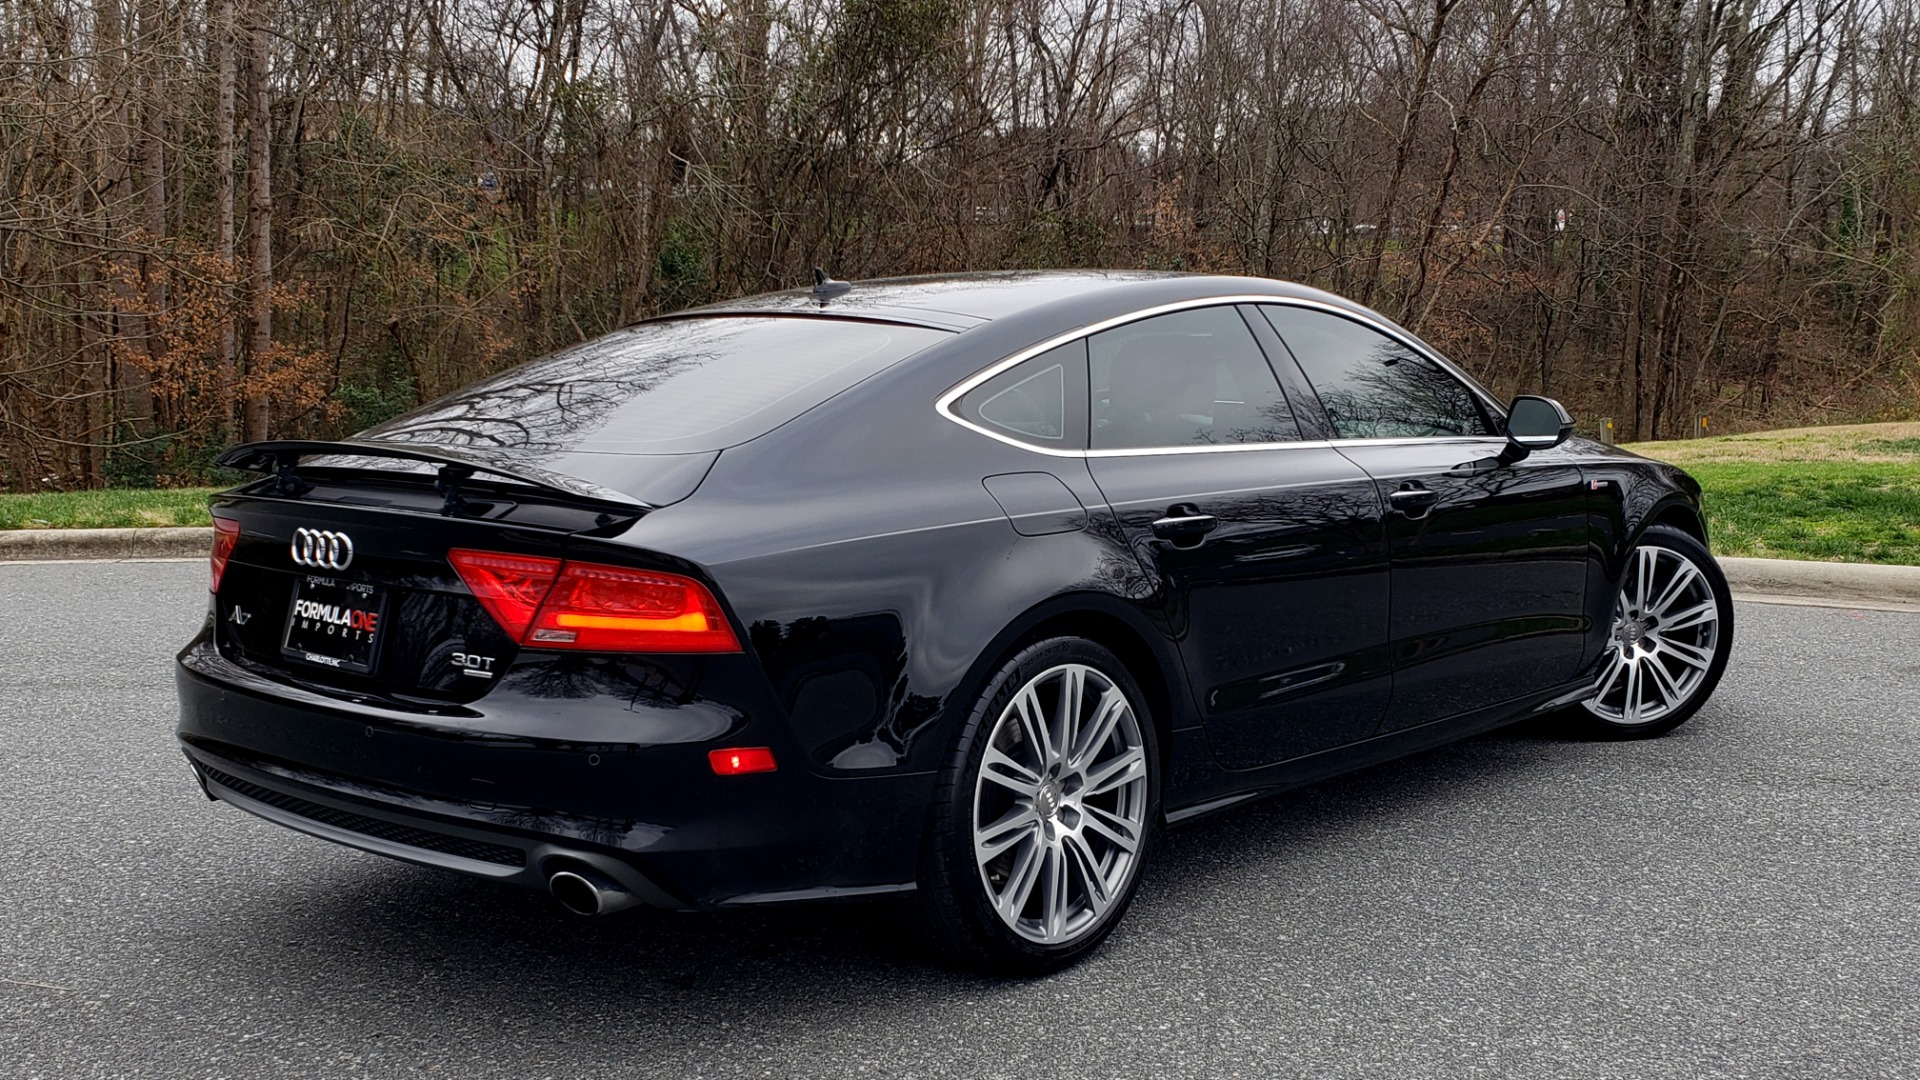 Used 2014 Audi A7 3.0 PRESTIGE / NAV / SUNROOF / BOSE / REARVIEW for sale Sold at Formula Imports in Charlotte NC 28227 7